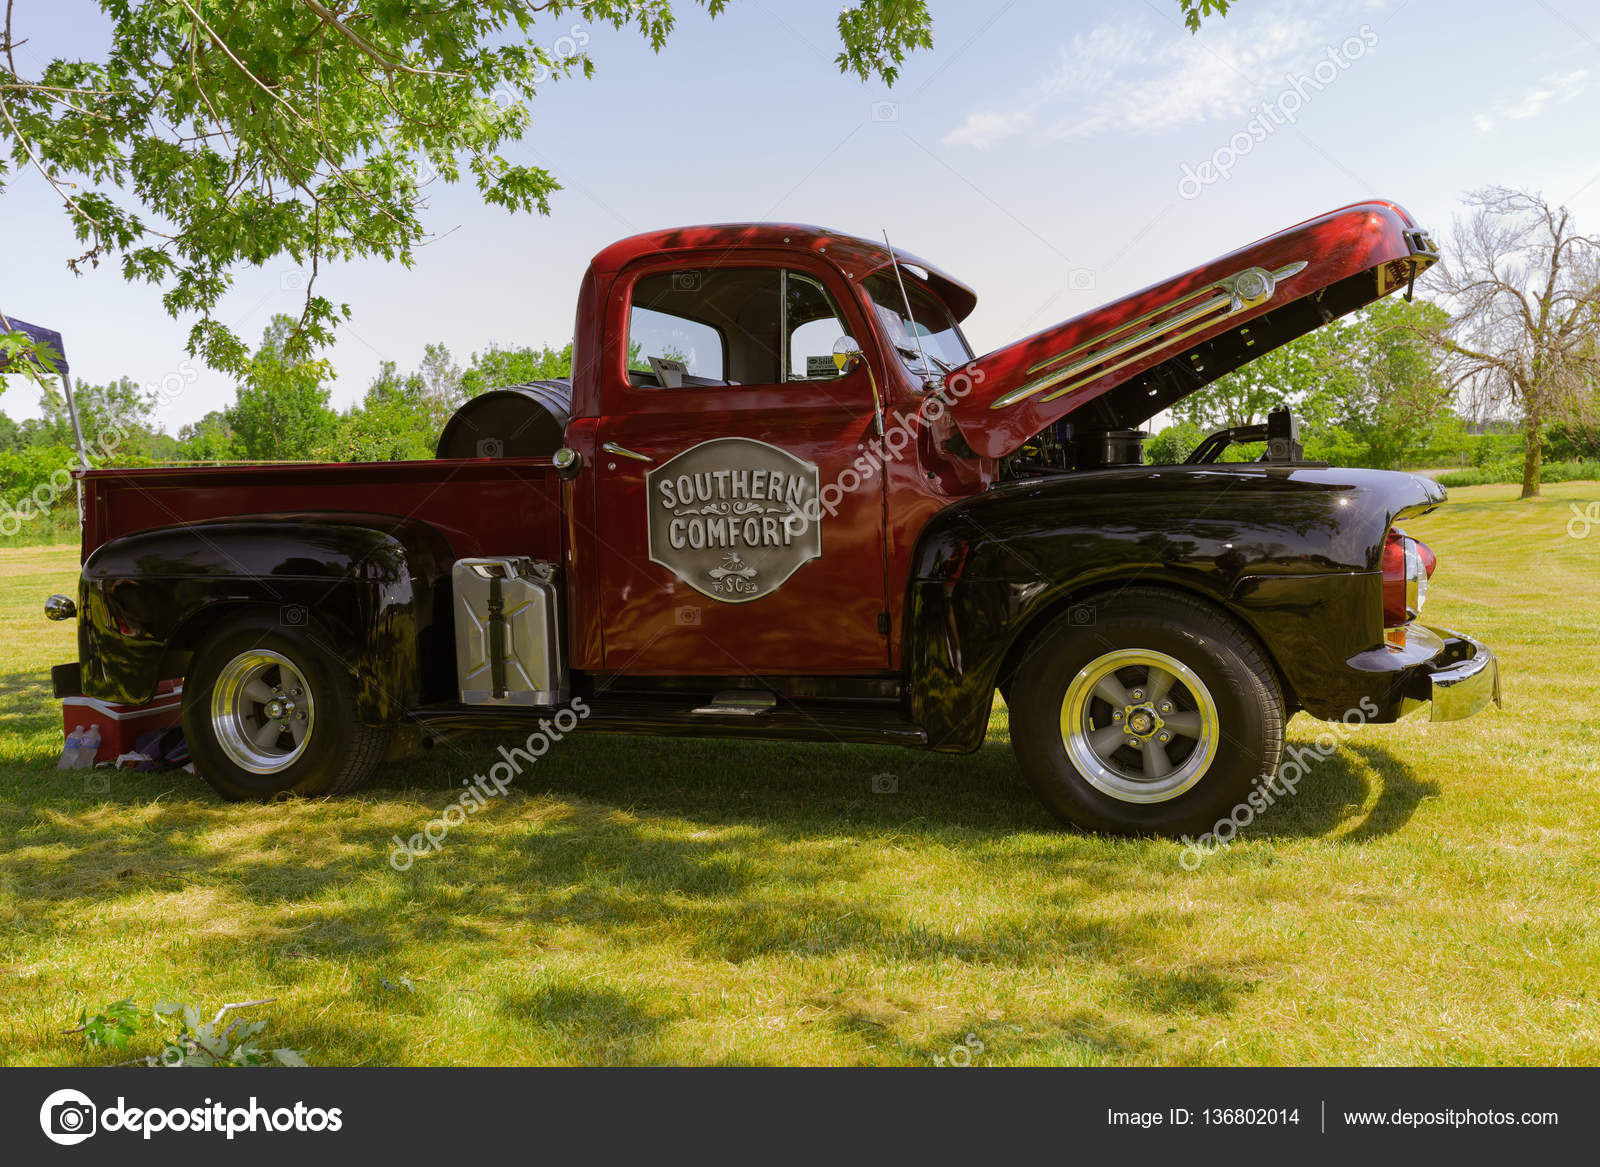 Nice Side View Of Old Classic Vintage Pickup Truck With Open Hood In Outdoor Park Stock Editorial Photo C Vitaldrum 136802014